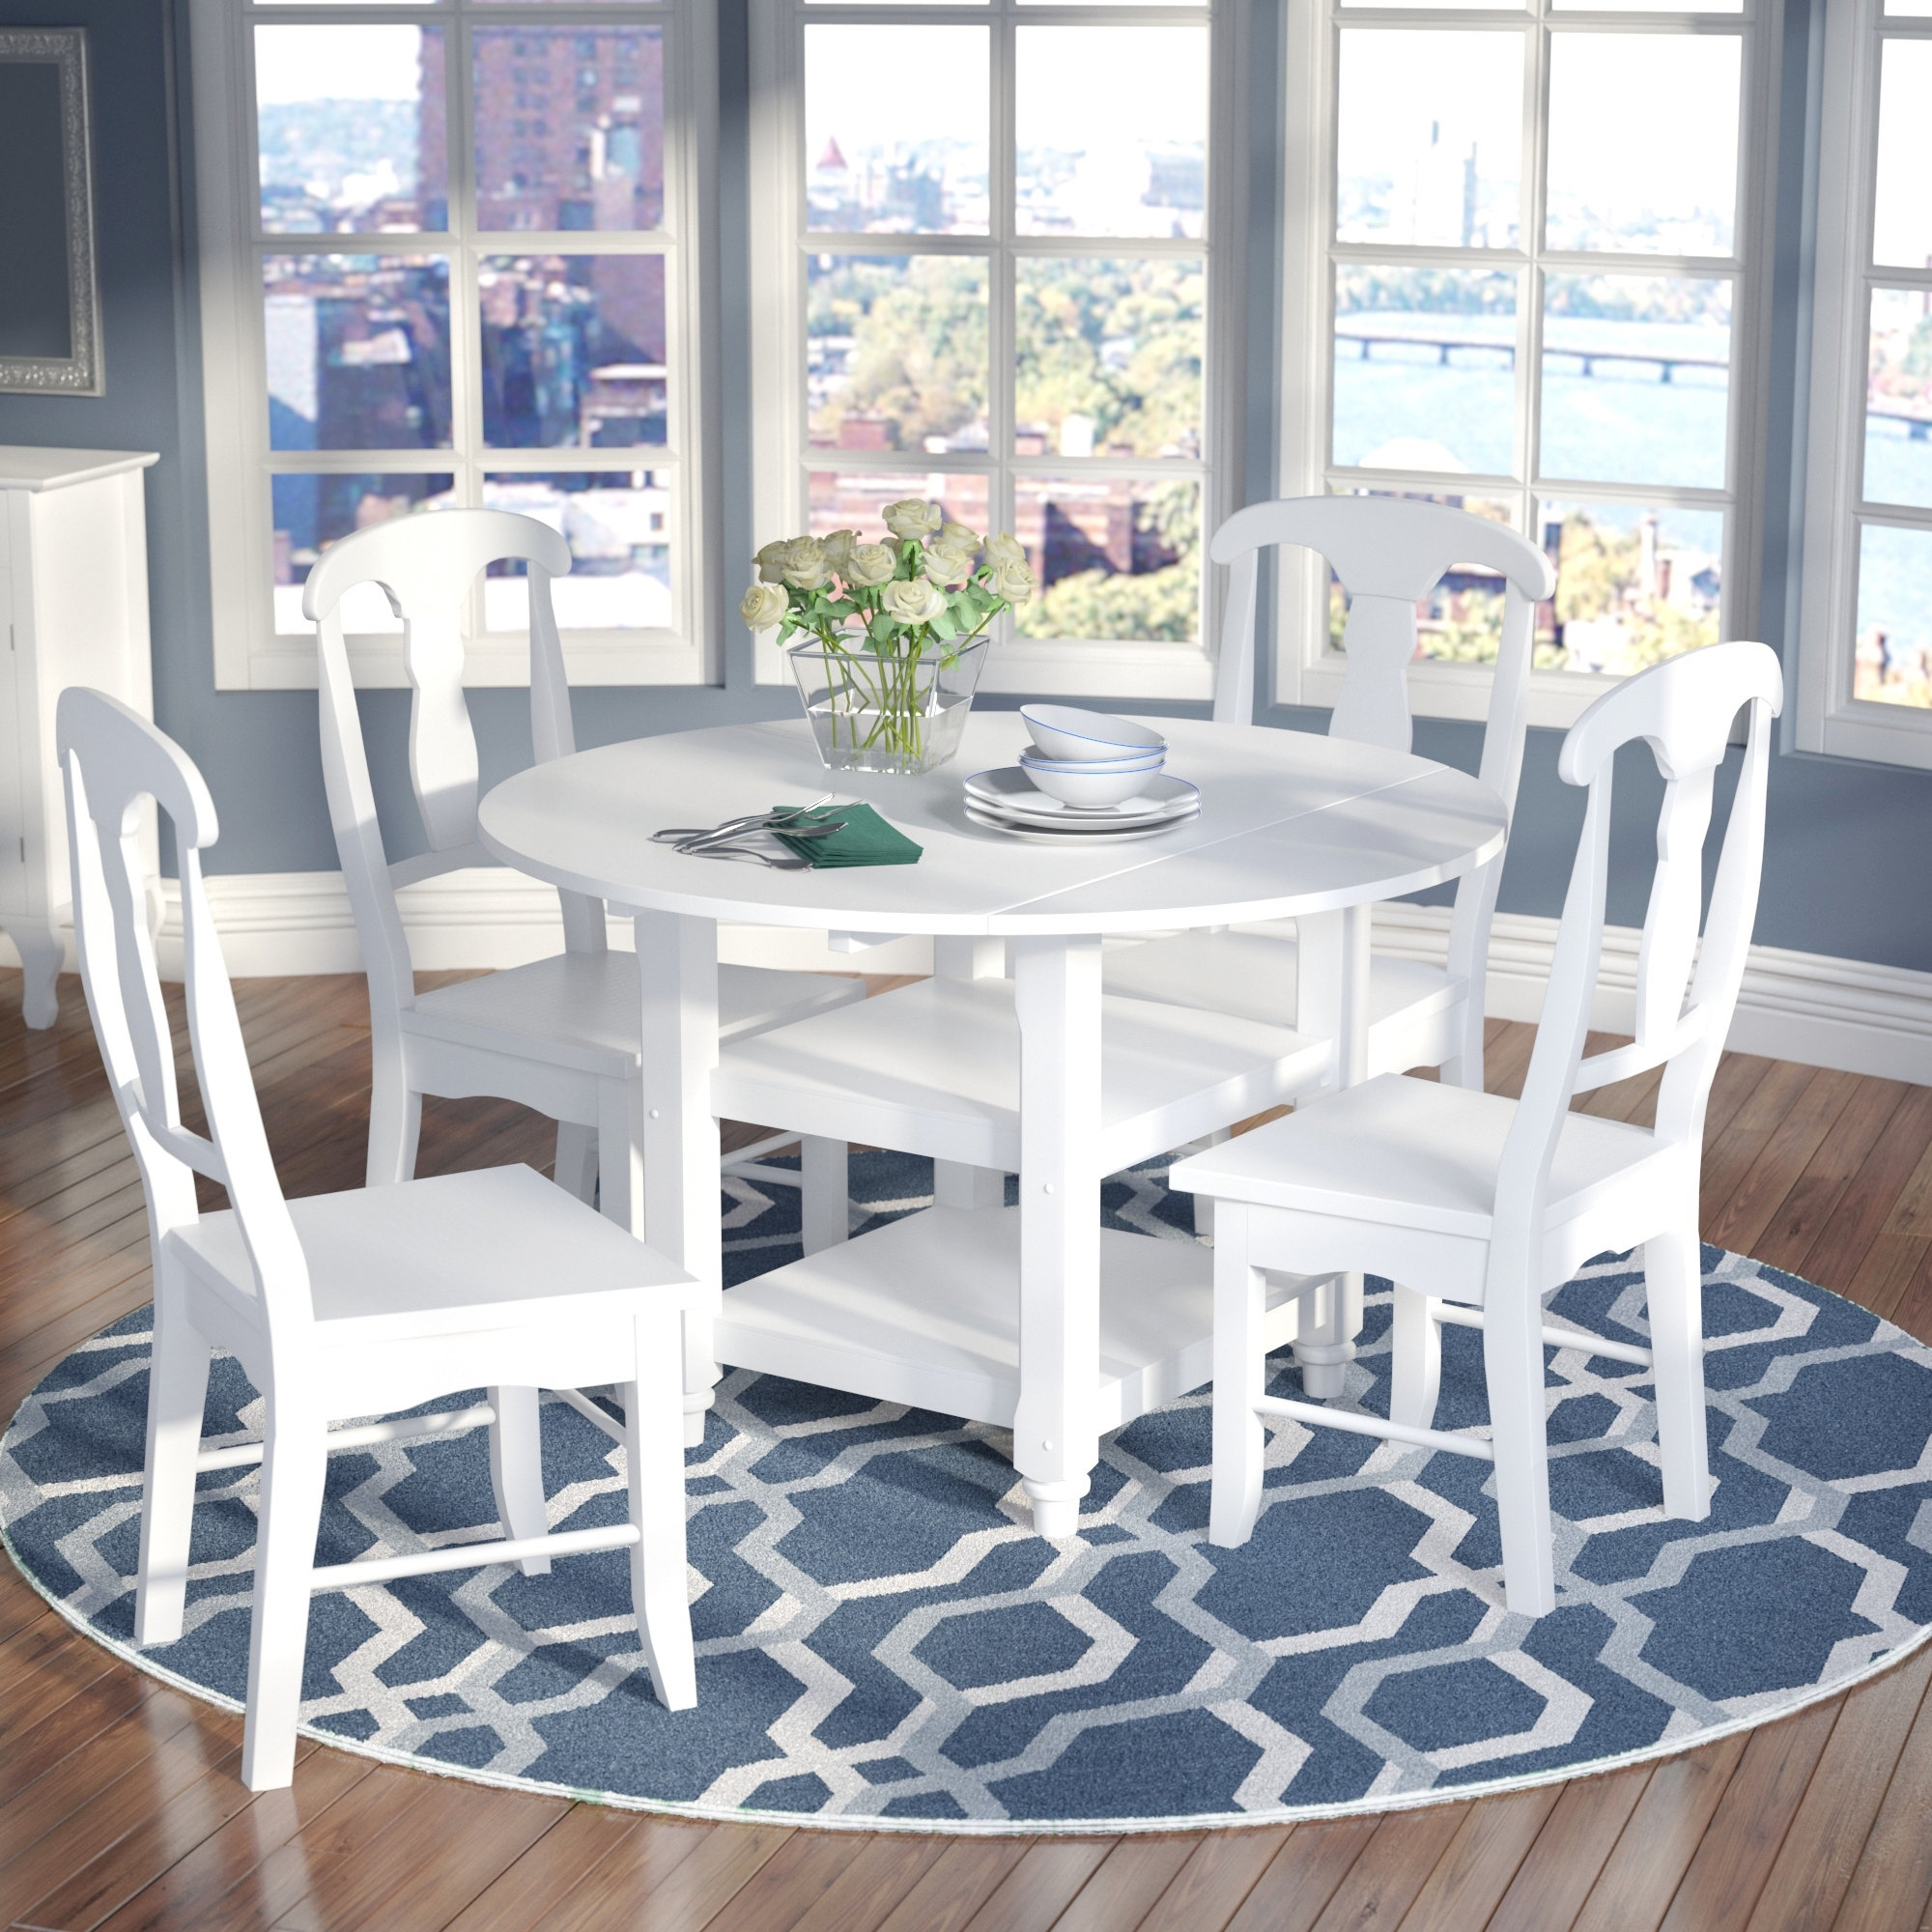 Alcott Hill Harwick 5 Piece Dining Set & Reviews | Wayfair Inside Most Recent Jaxon 5 Piece Extension Round Dining Sets With Wood Chairs (Image 4 of 20)